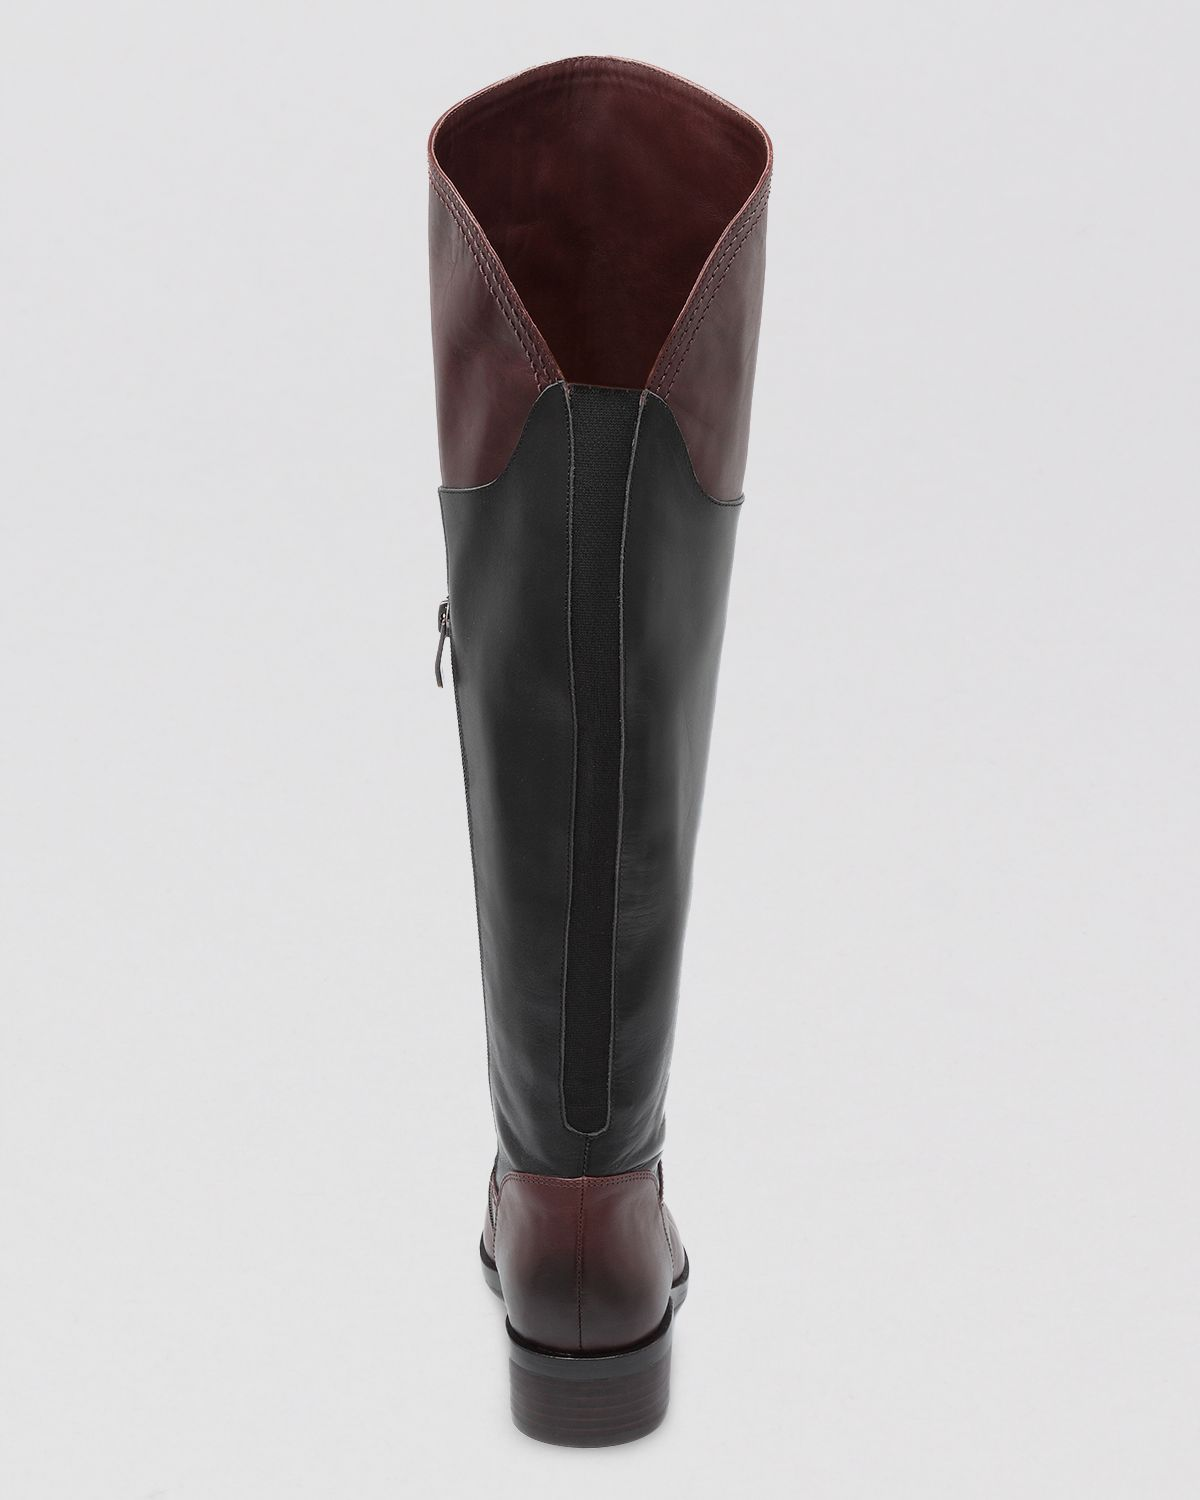 Vince camuto Over The Knee Riding Boots Vatero Two Tone in Brown ...